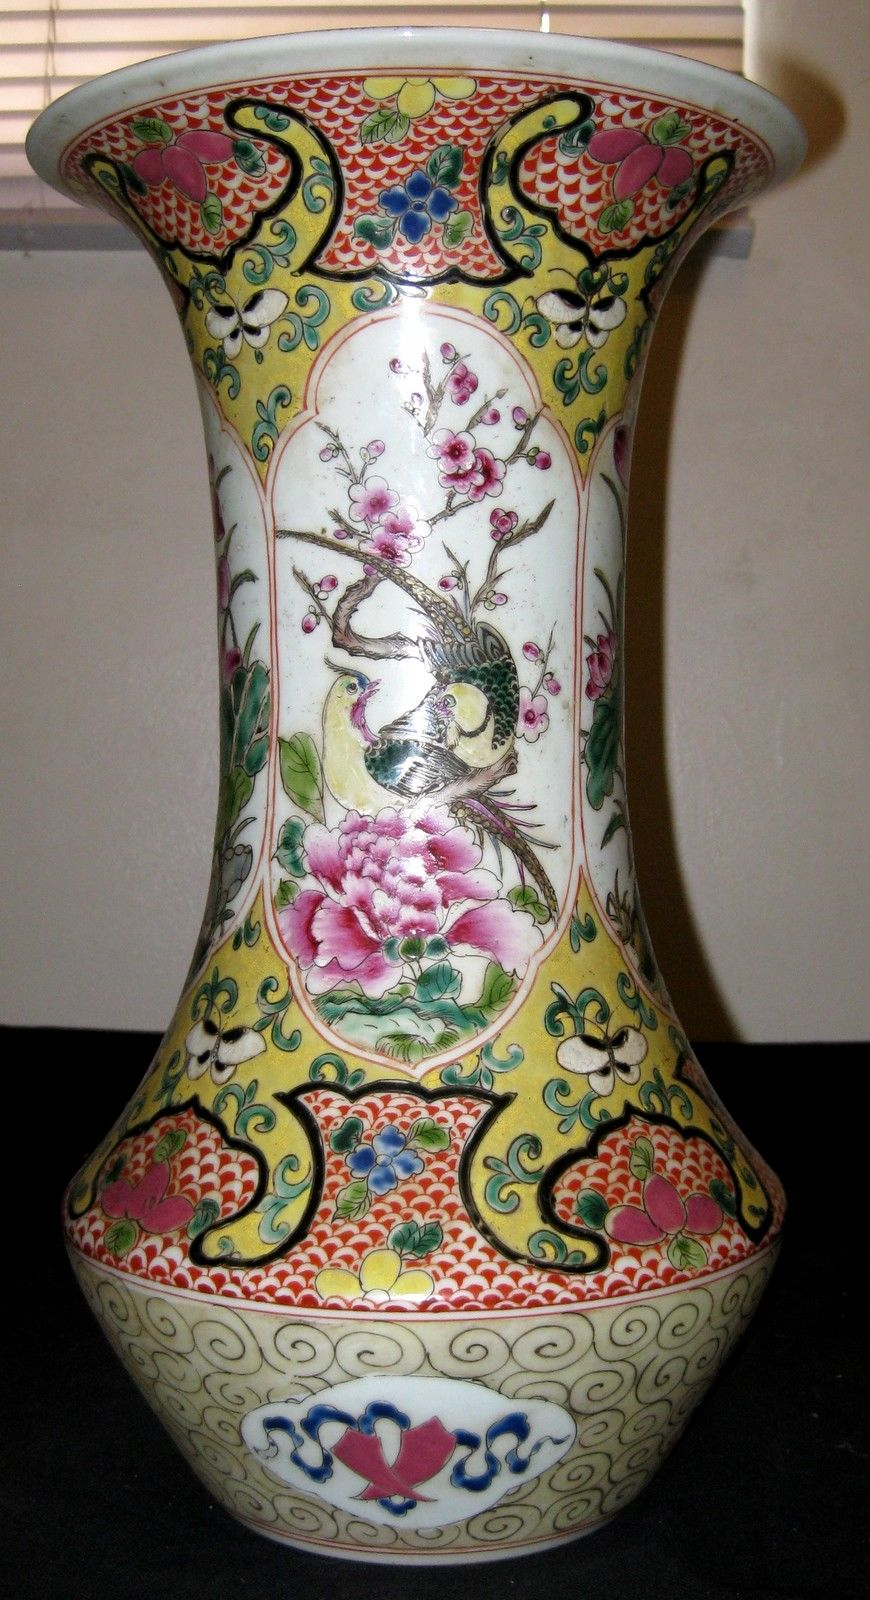 ANTIQUE-CHINESE-PORCELAIN-FLOWER-BIRD-VASE-19TH-C-QING-DYNASTY-YONGZHEN MARK